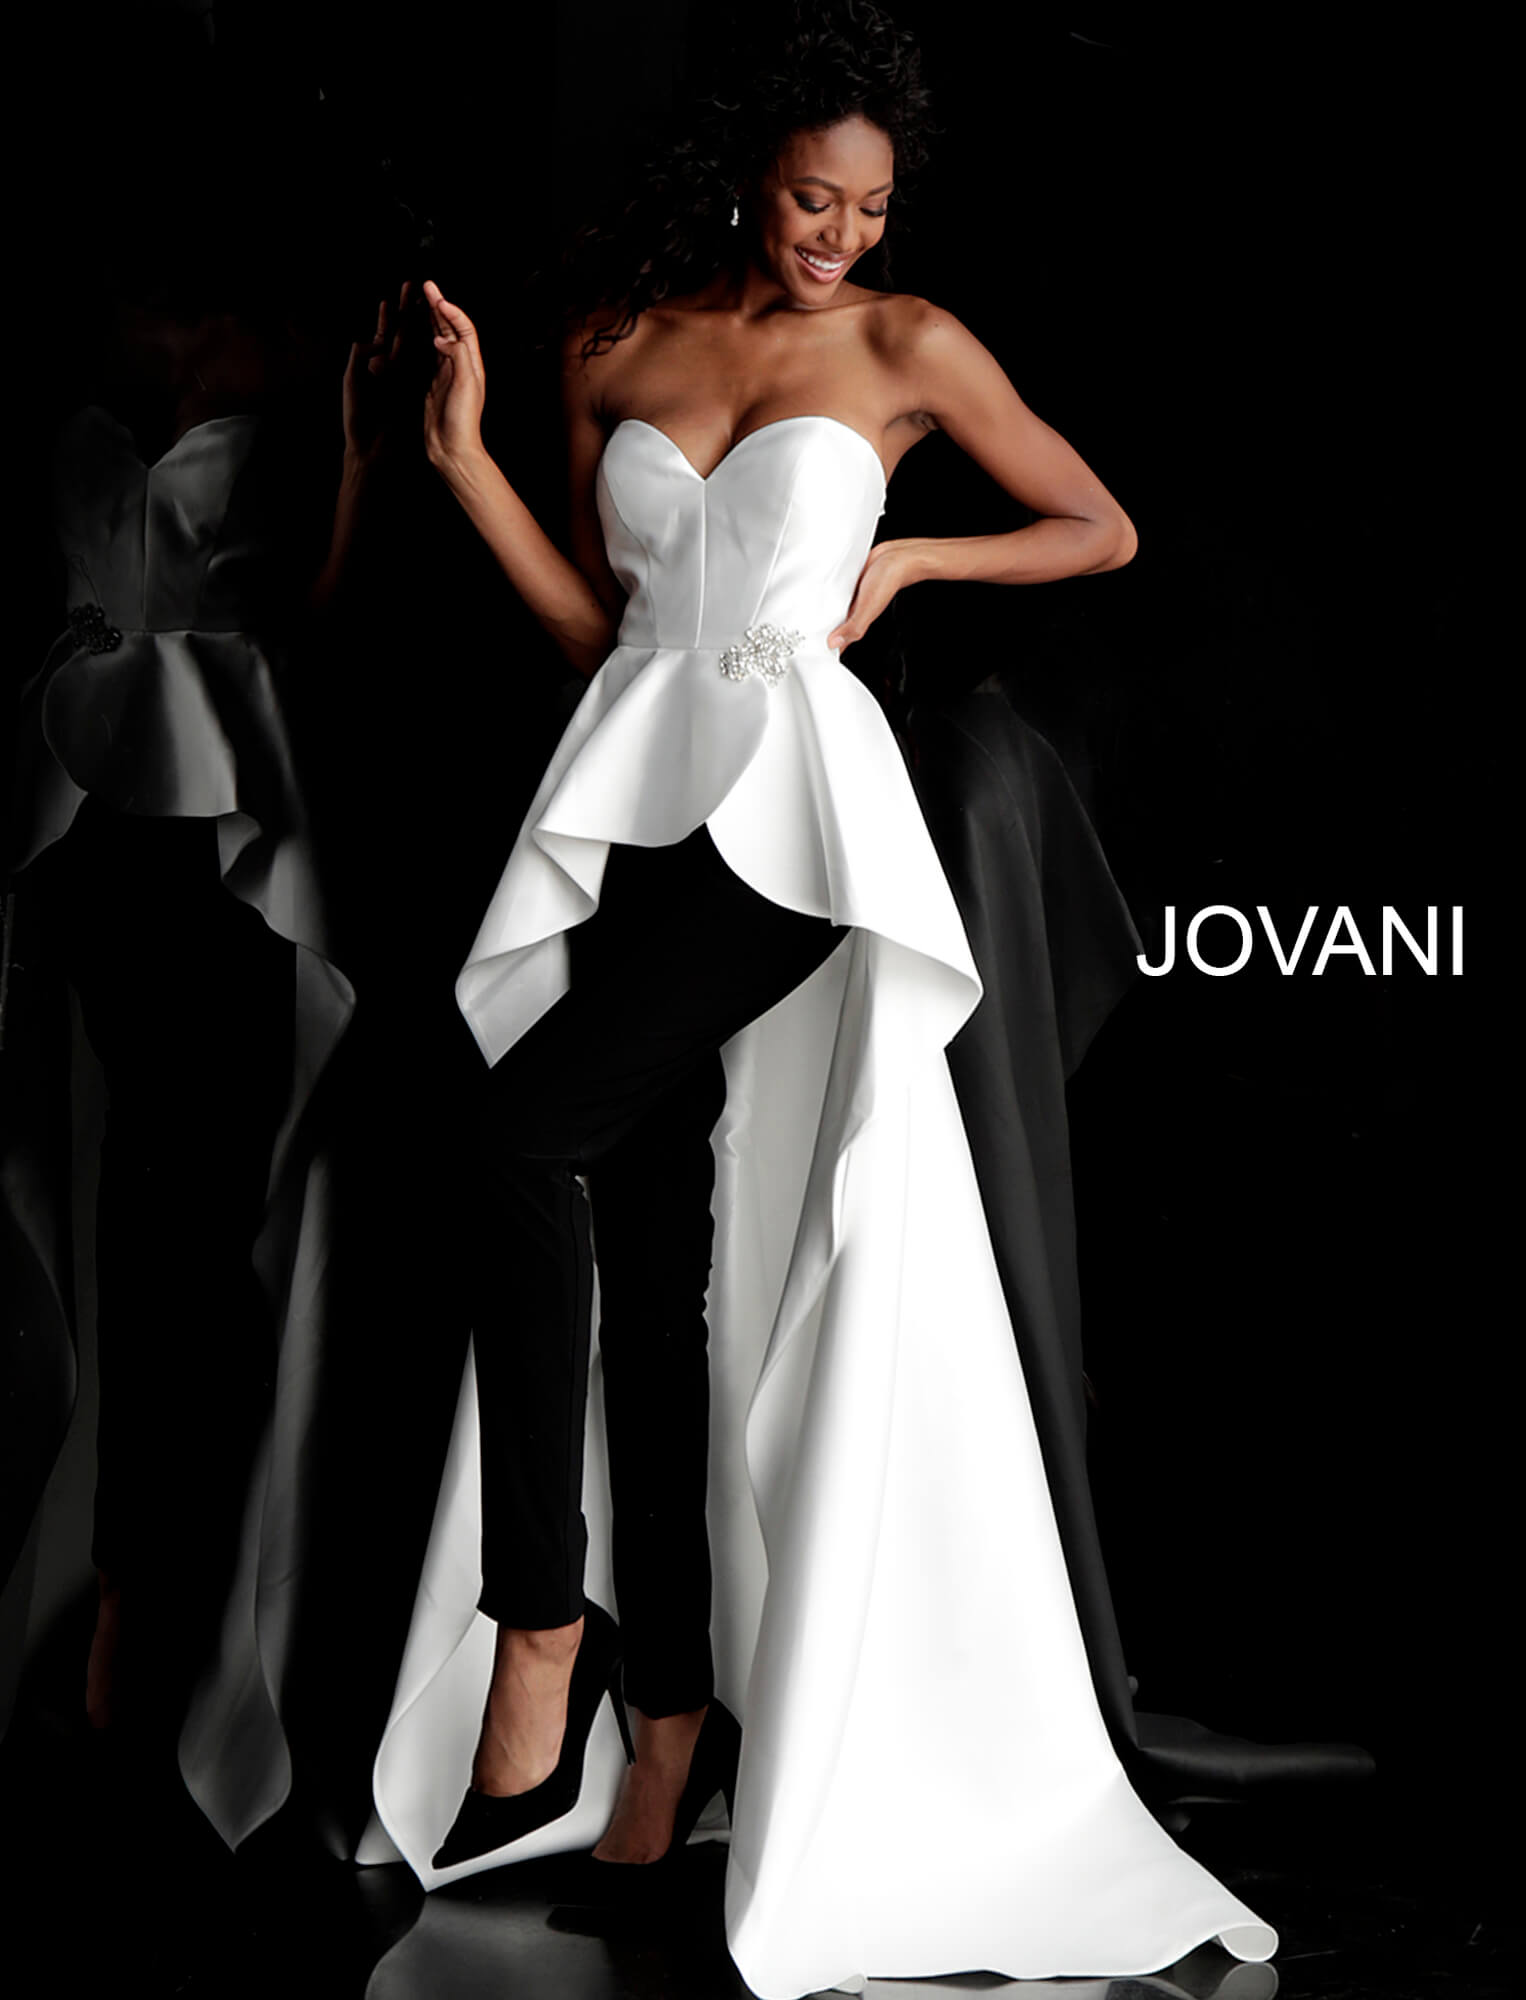 jovani Ivory Black Strapless Sweetheart Pantsuit with Overskirt 66852 on mobile 1